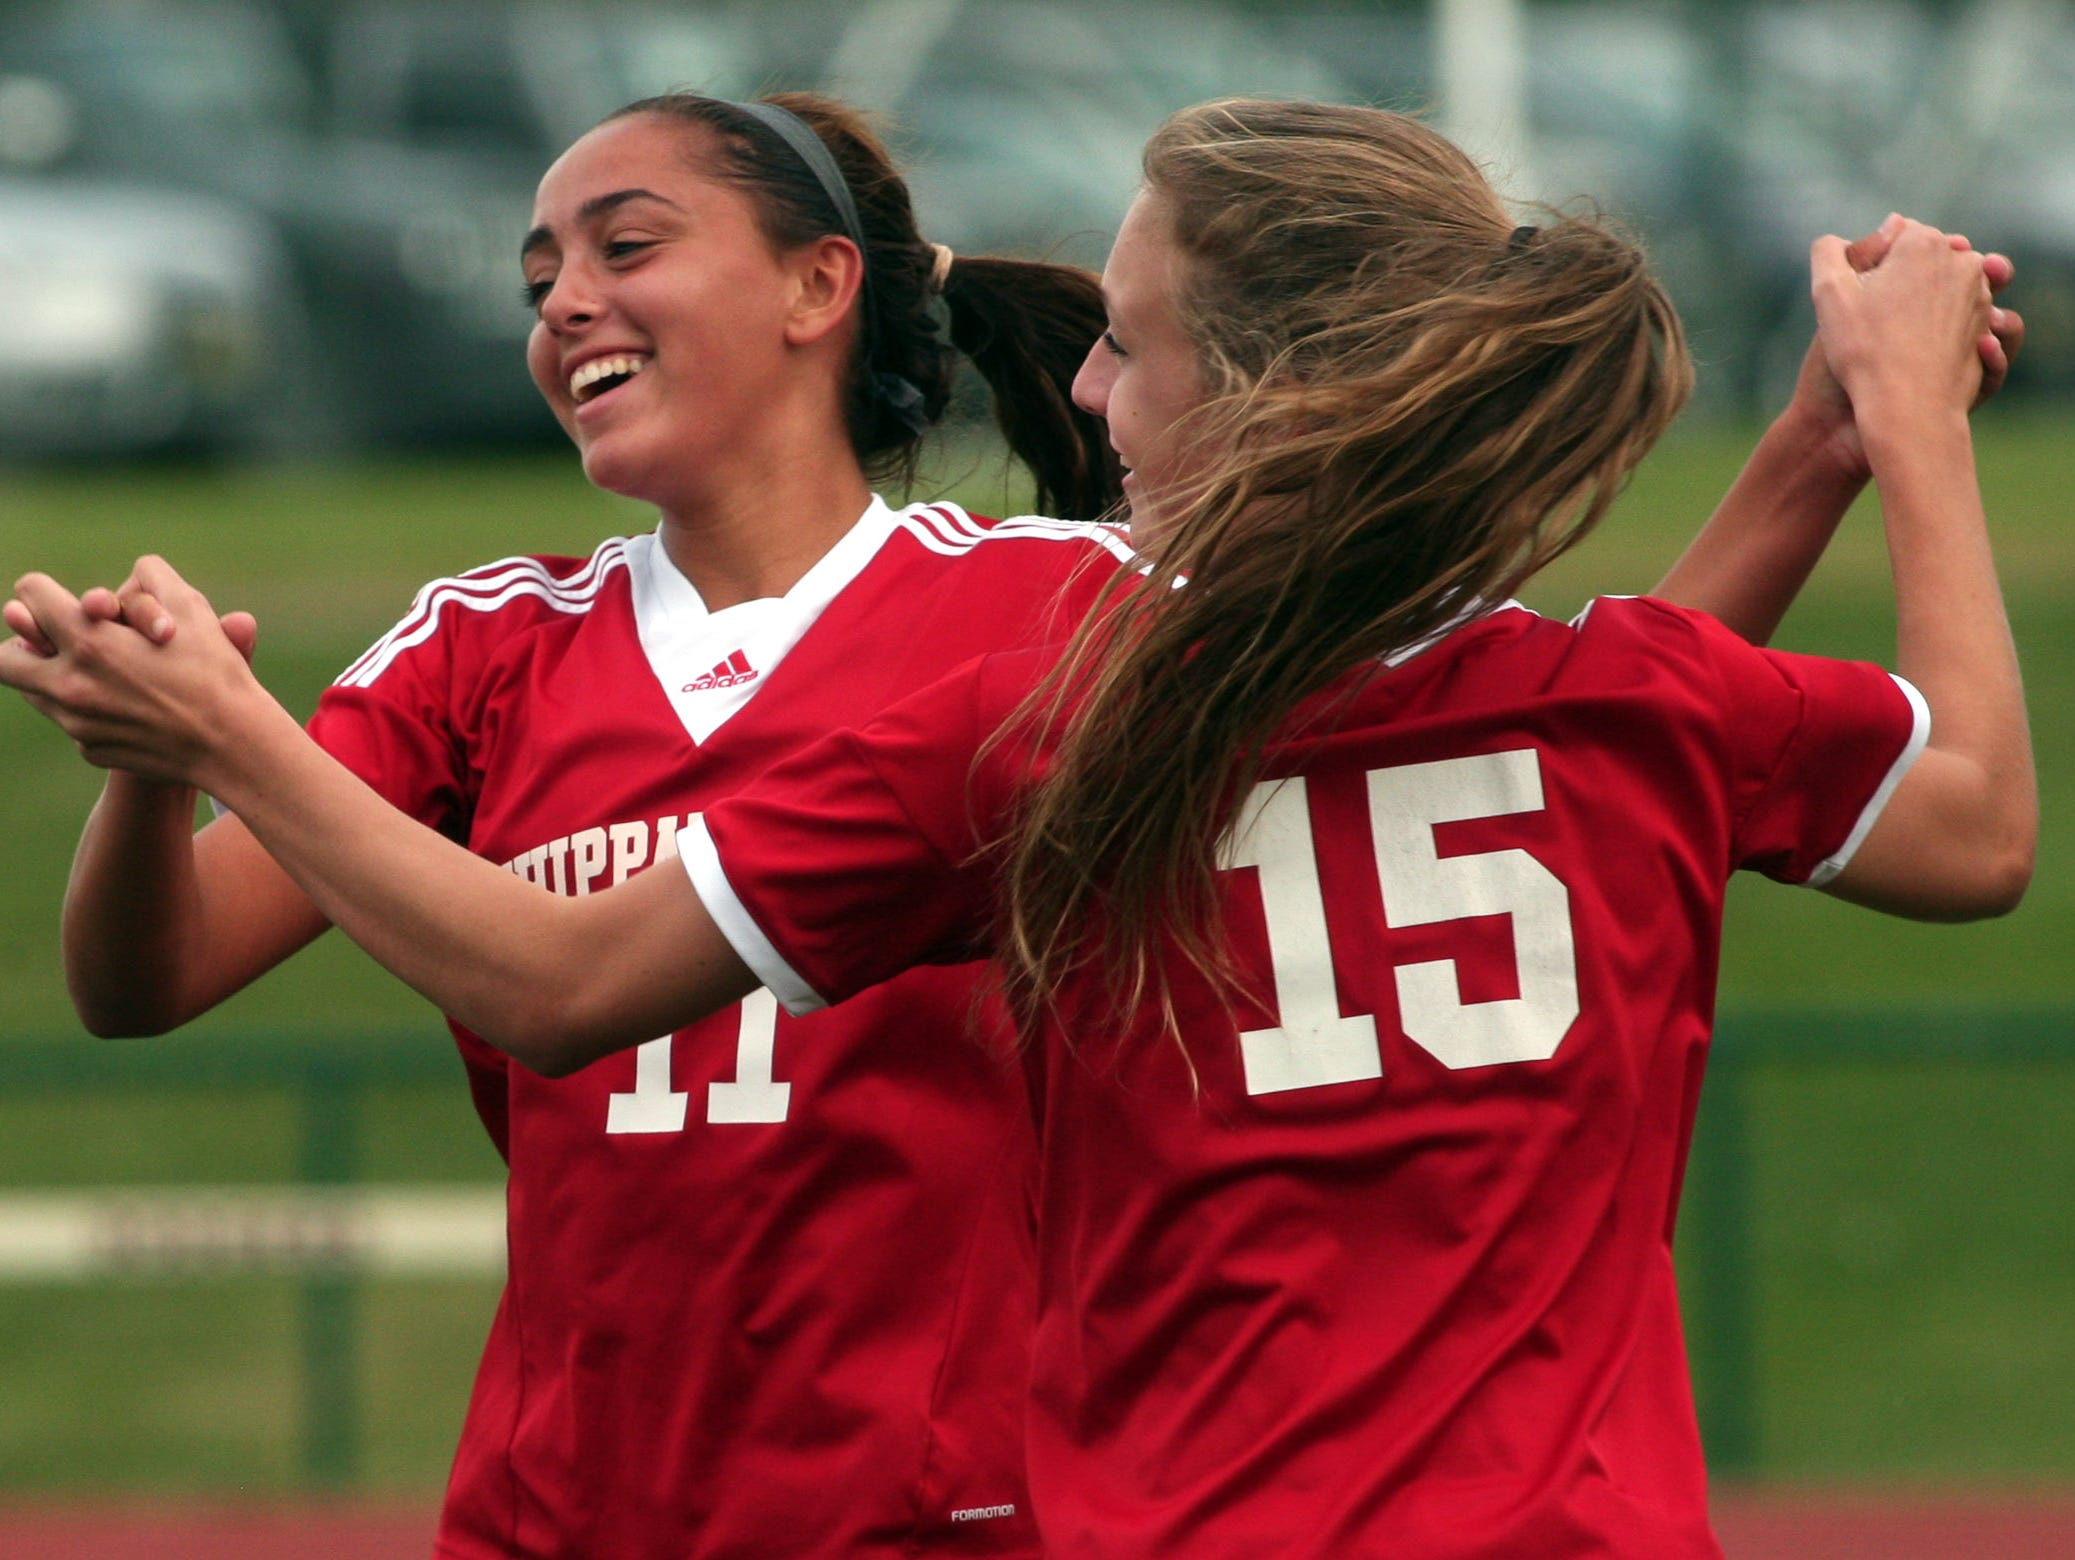 Whippany Park's Silvana Poulter, l, celebrates her goal with teammate Jessica Murphy vs Madison during their girls soccer matchup. September 22, 2015, Madison, NJ.